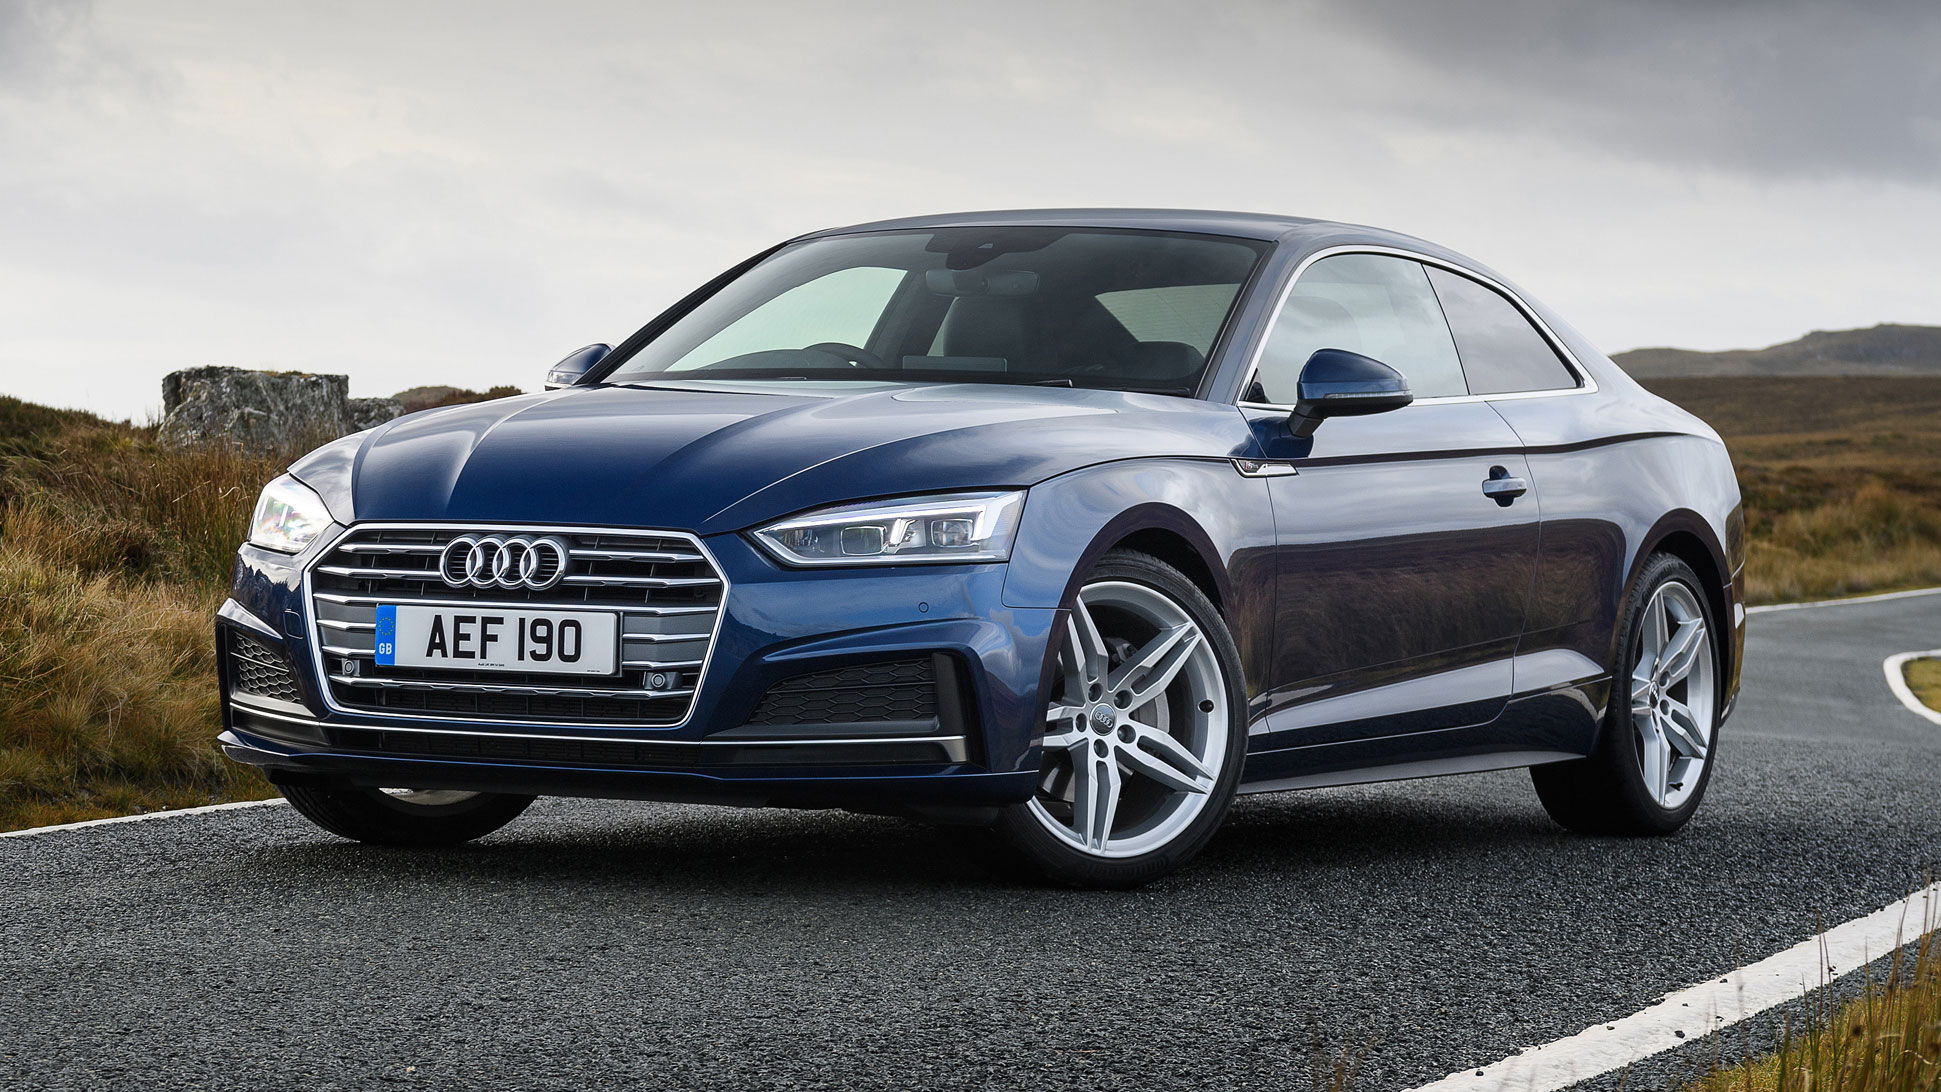 Audi A5 Finance >> Audi A5 Coupe (2016 - ) review | Auto Trader UK